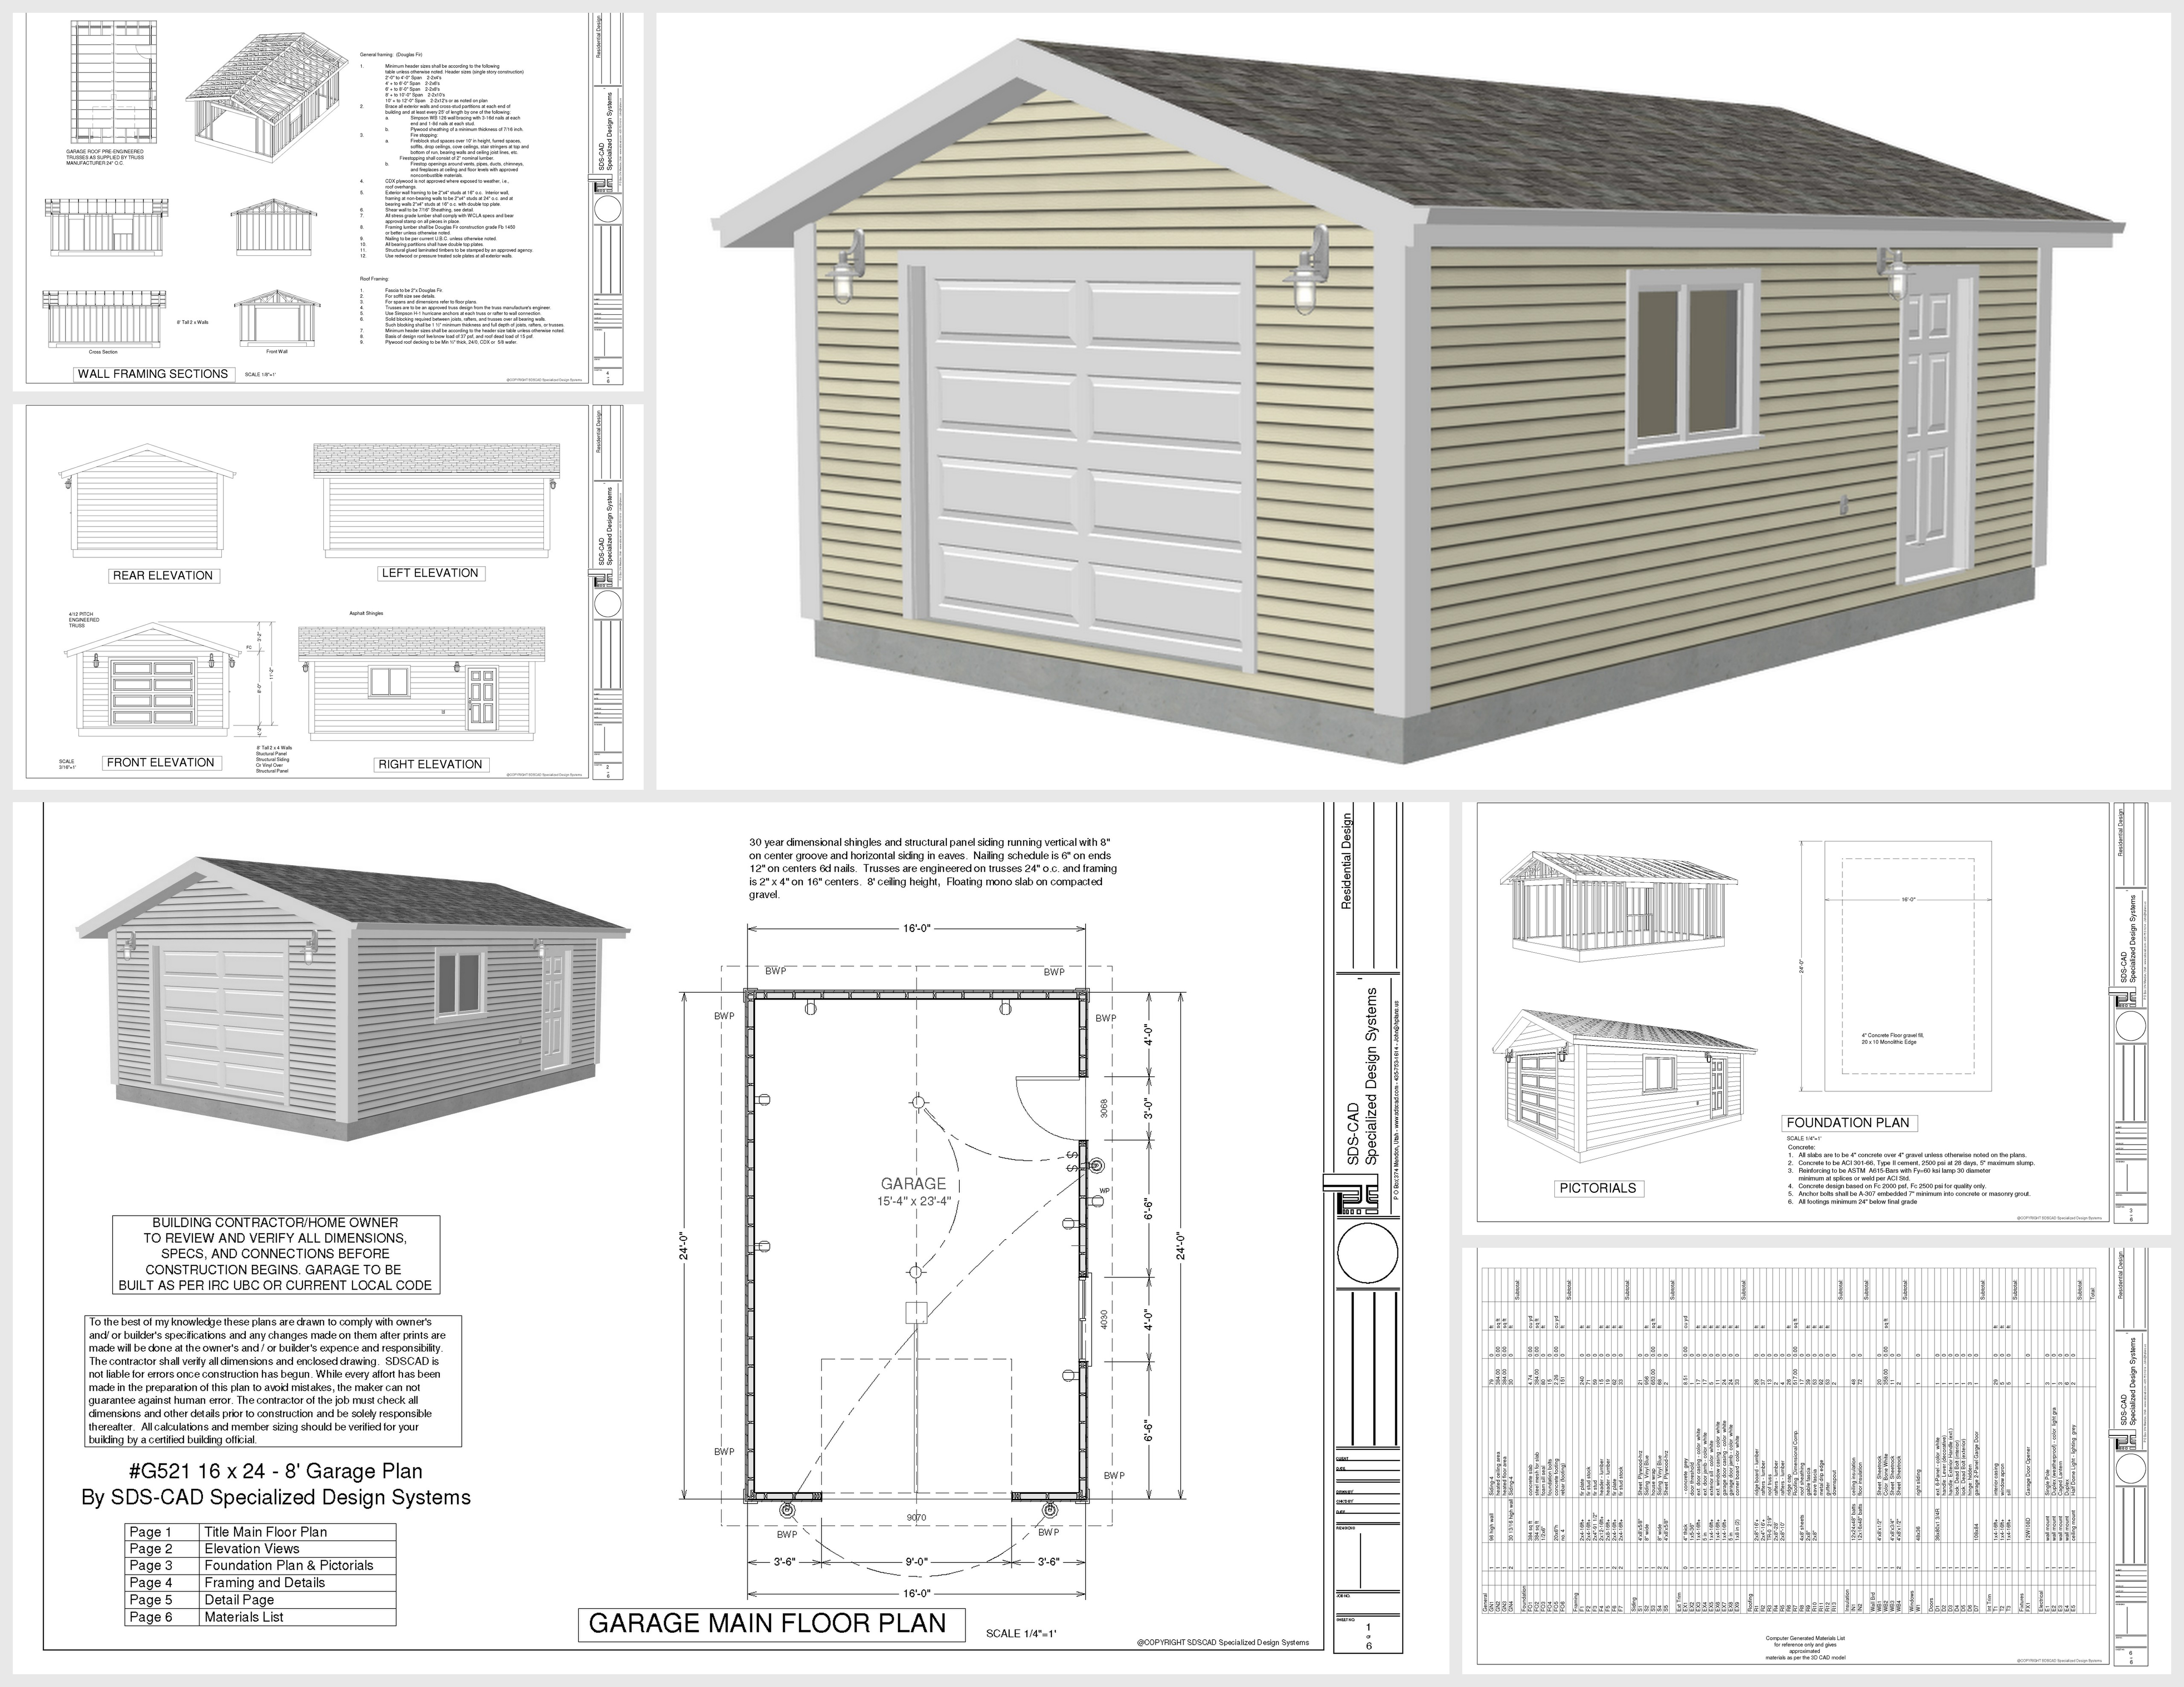 Garage plans free plans diy free download how to build a for Garage plans free download